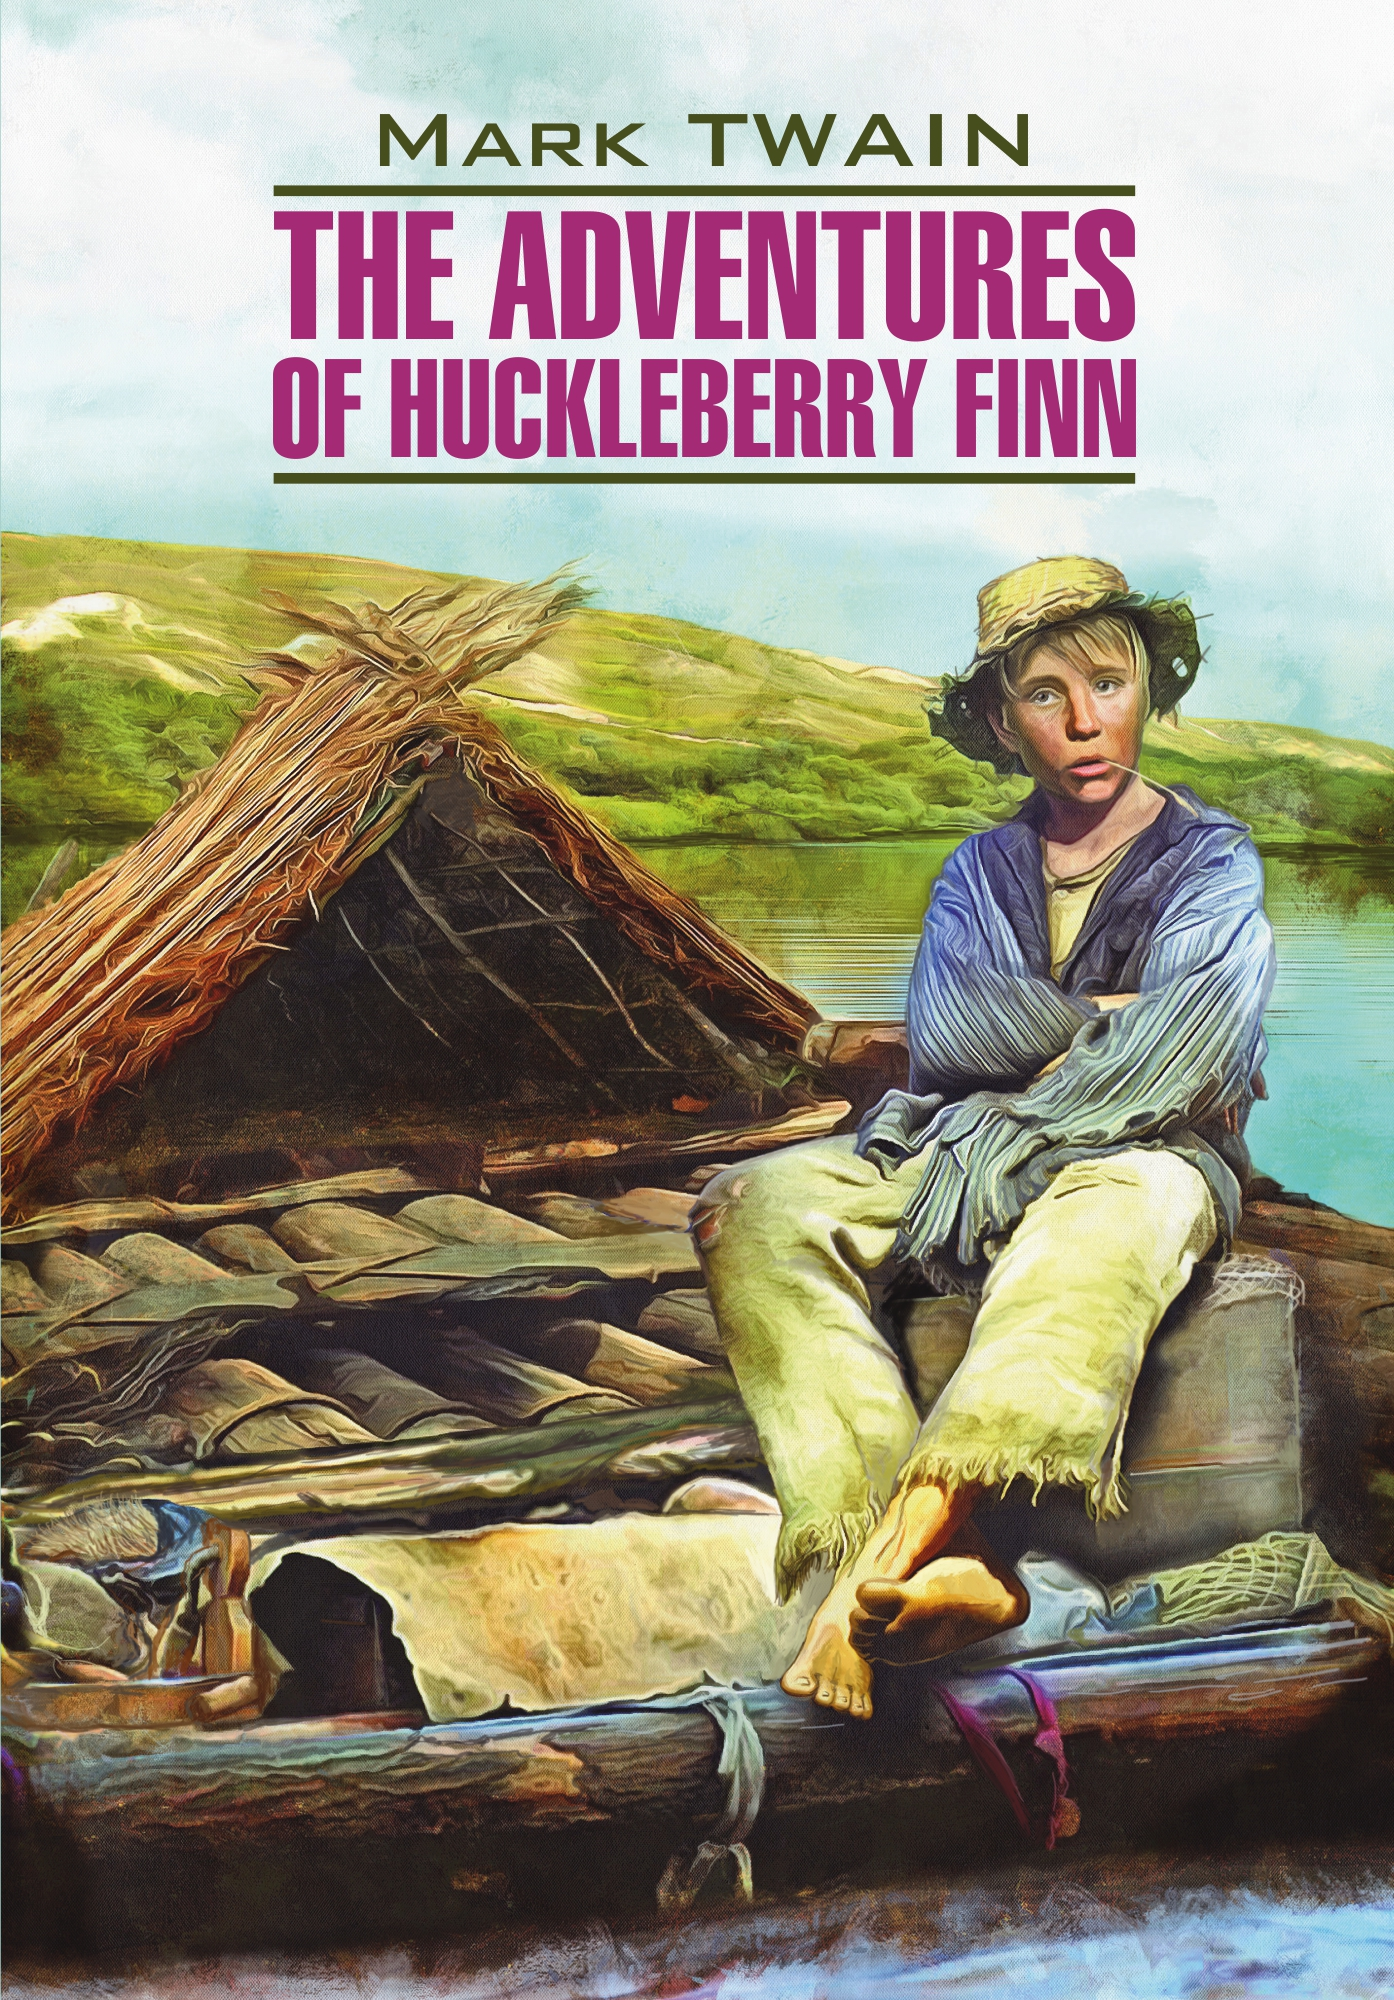 Марк Твен The Adventures of Huckleberry Finn / Приключения Гекльберри Финна. Книга для чтения на английском языке гофман э т а щелкунчик и мышиный король isbn 9785445310594